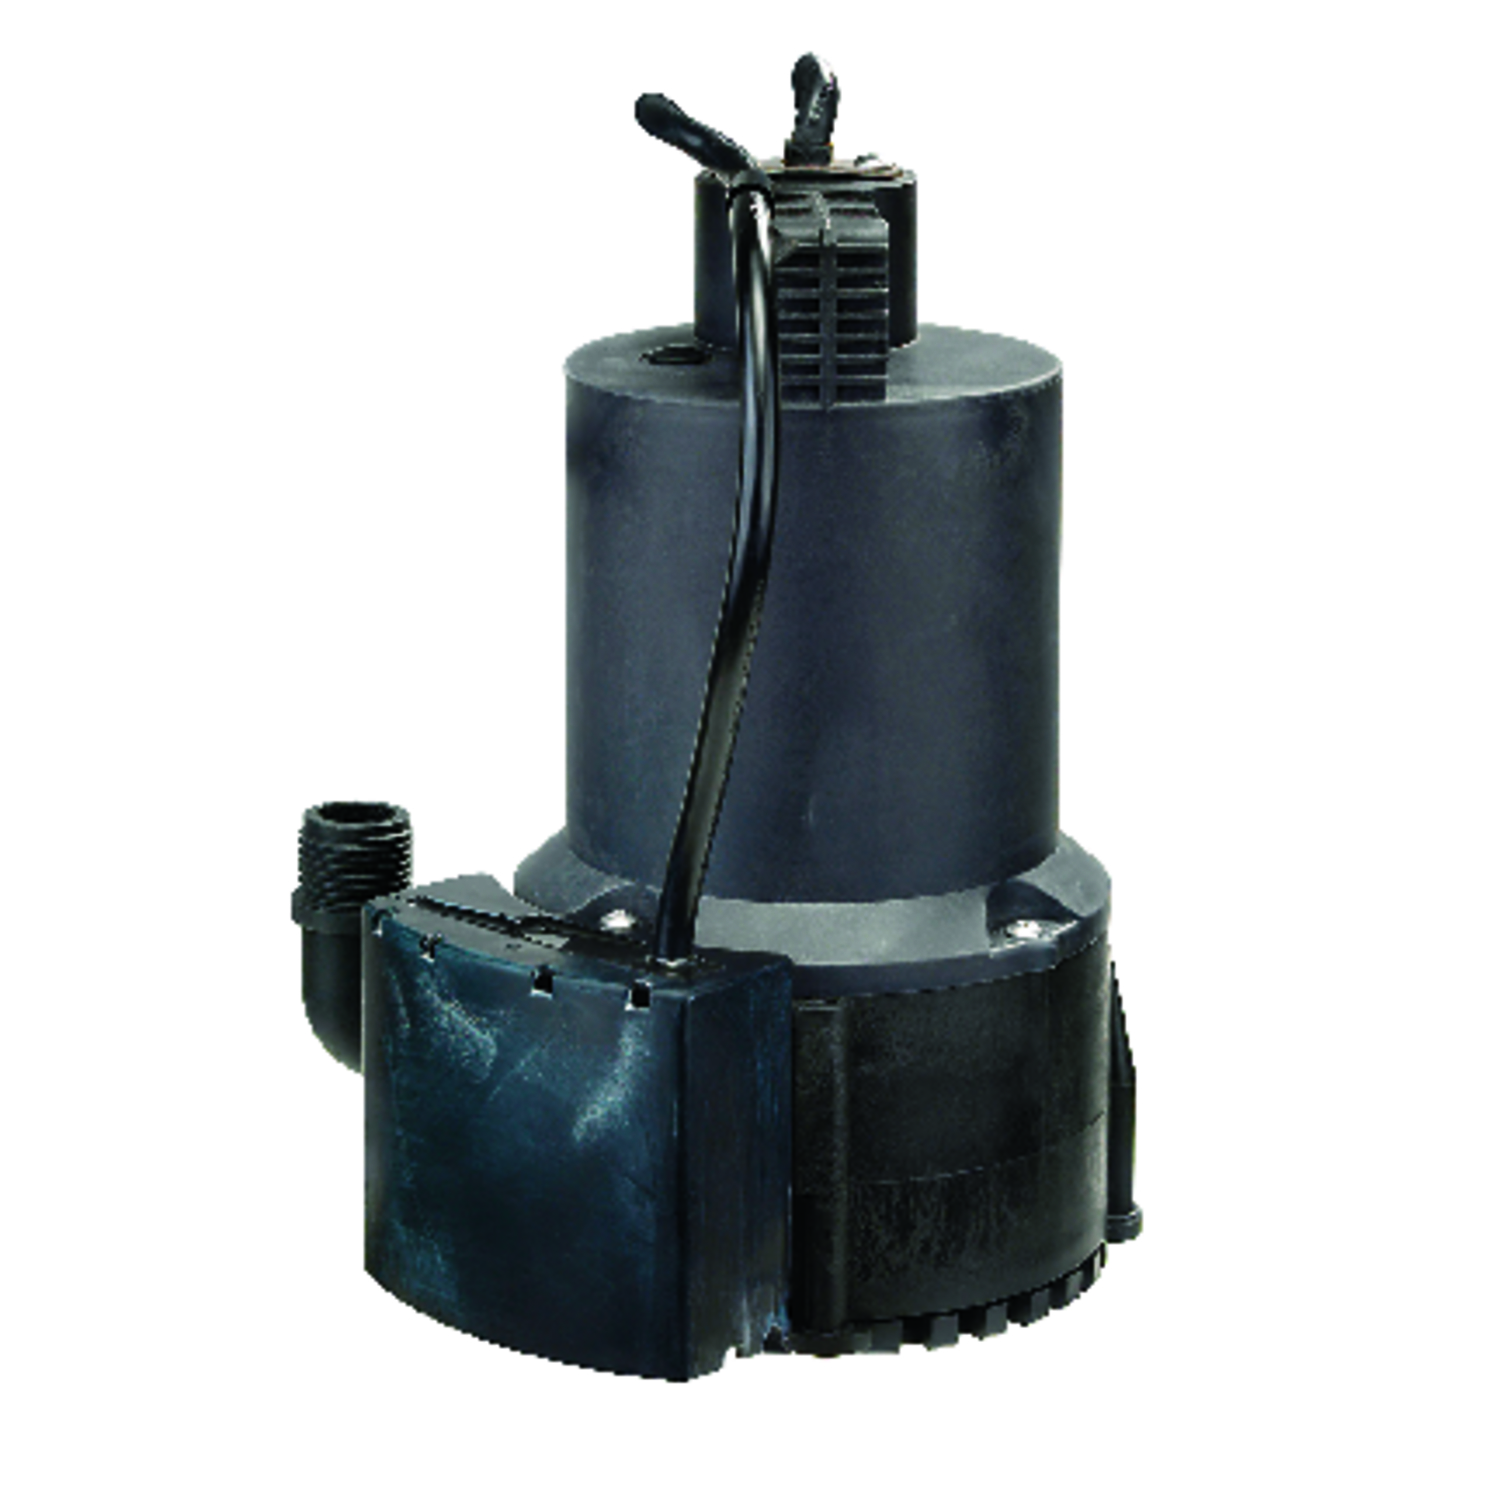 Wayne  Thermoplastic  Submersible Utility Pump  1/4 hp 3000 gph 120 volts